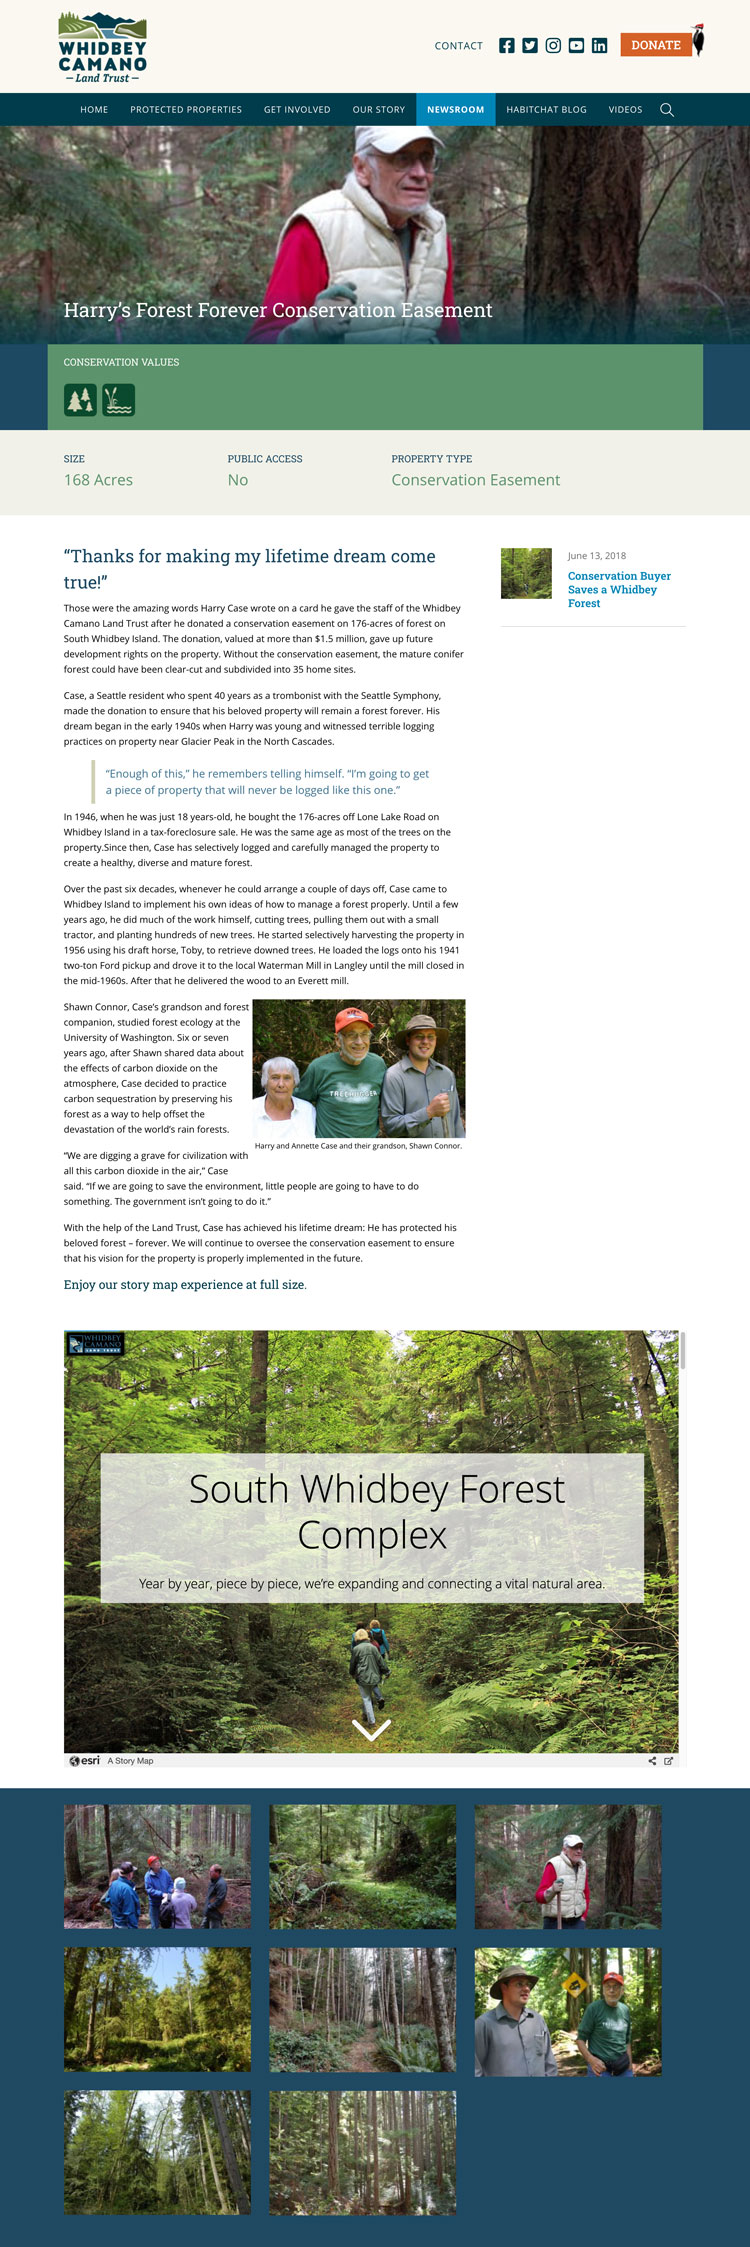 South Whidbey Story